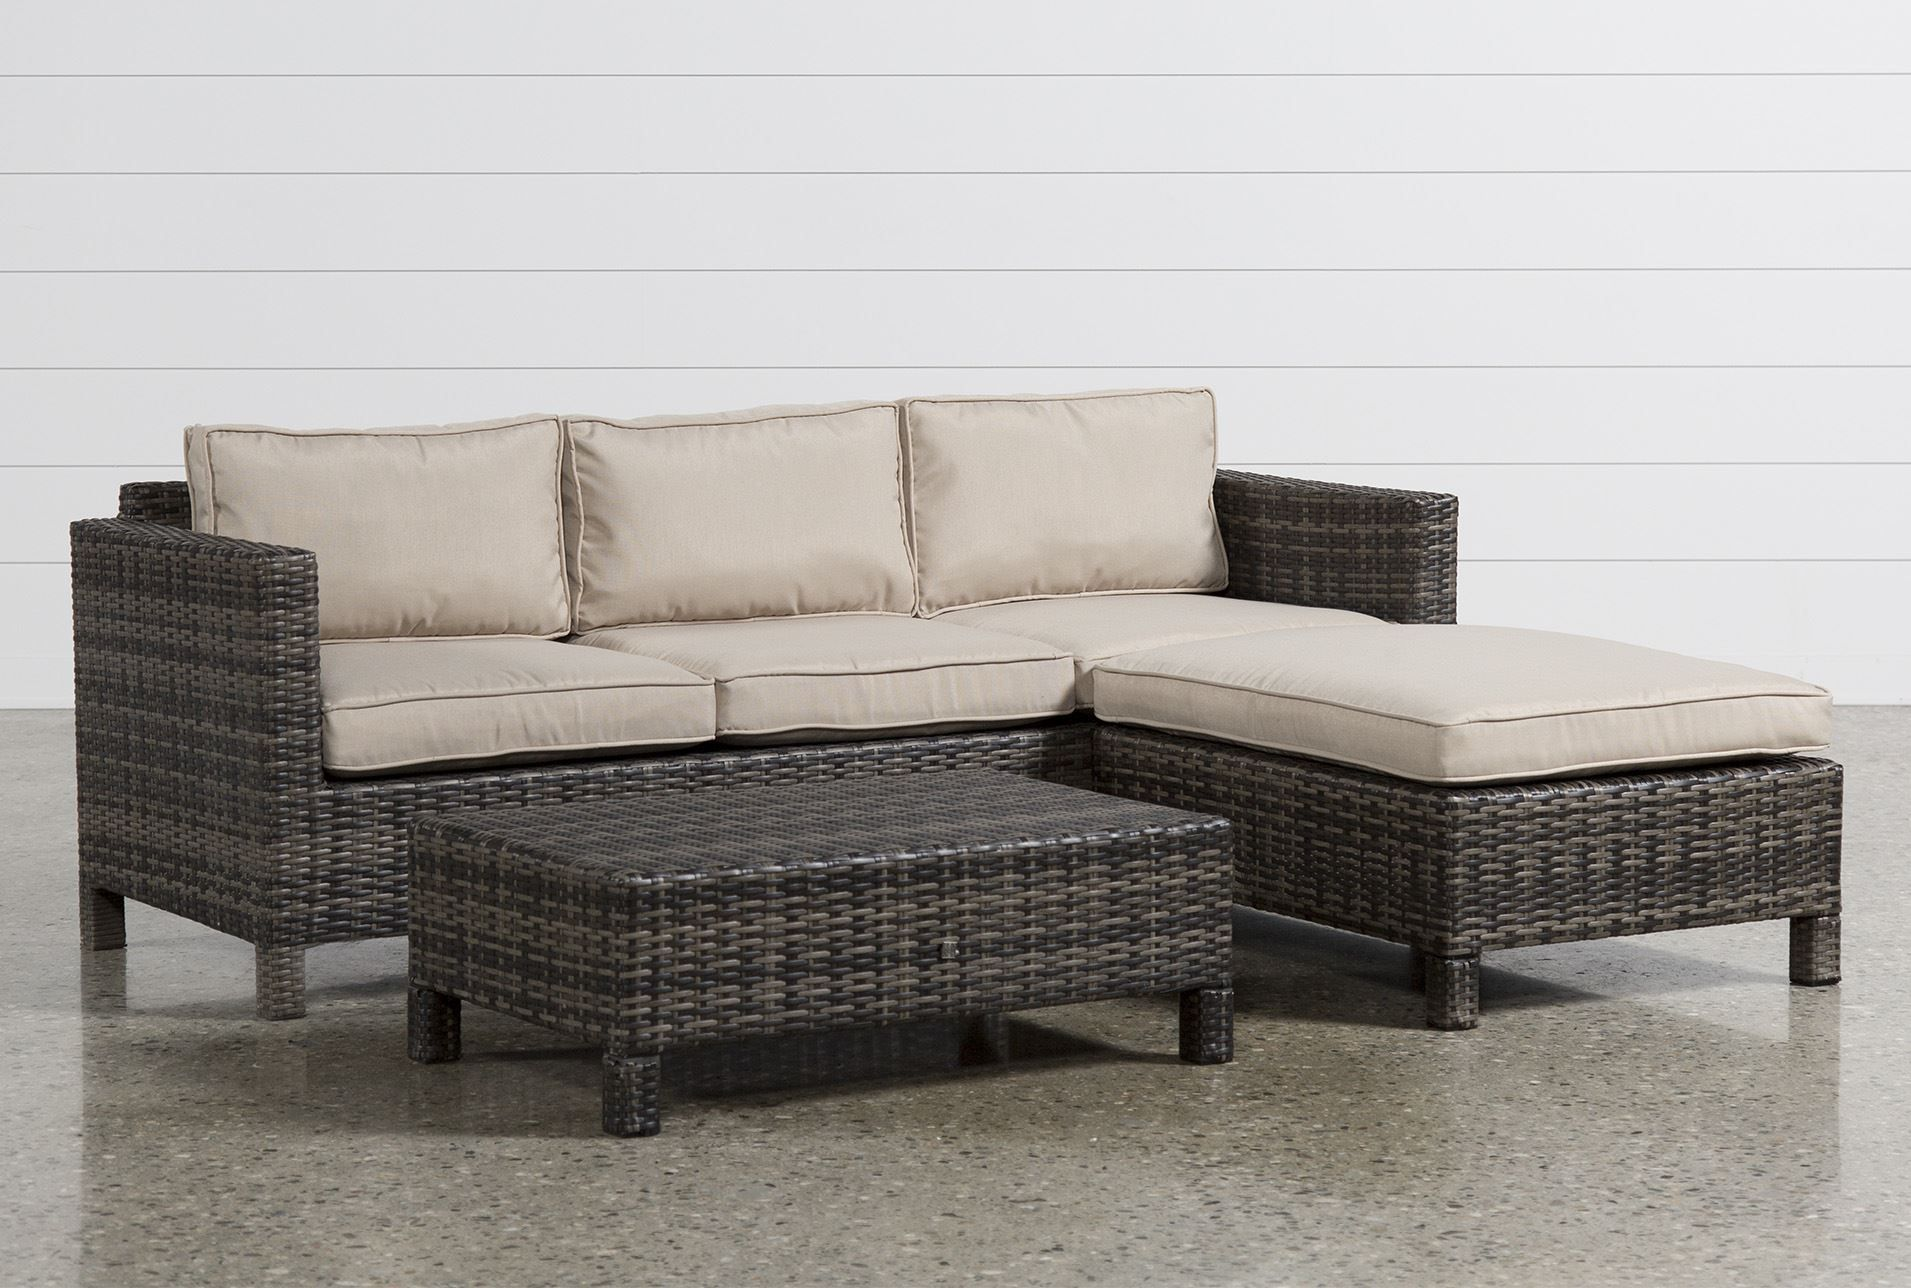 Montego Ii Sofa W Reversible Chaise Patio Furniture Sets Patio Seating Shabby Chic Patio